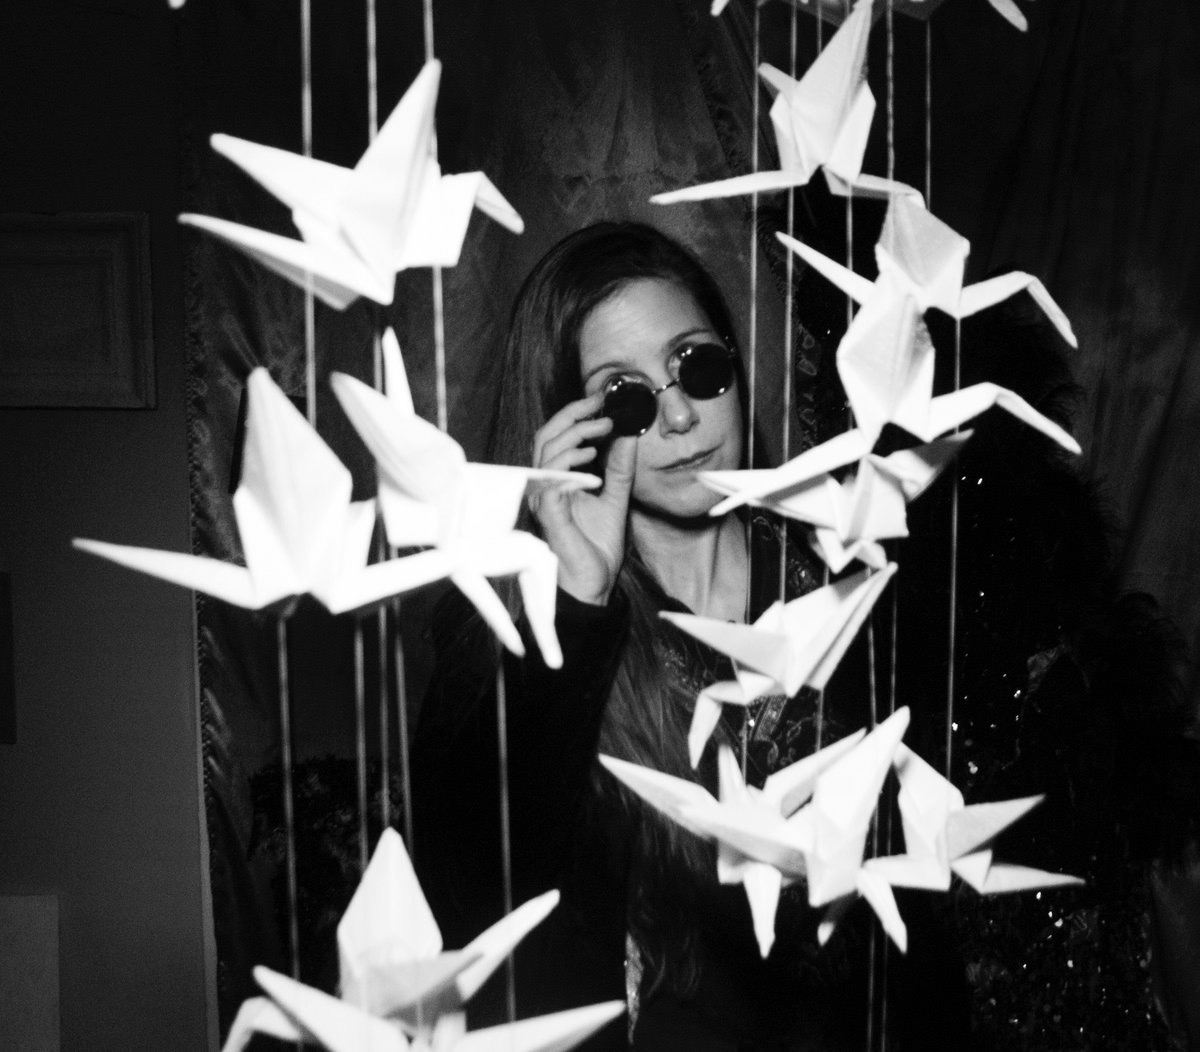 Godin tilting sunglasses at hanging braille origami cranes.